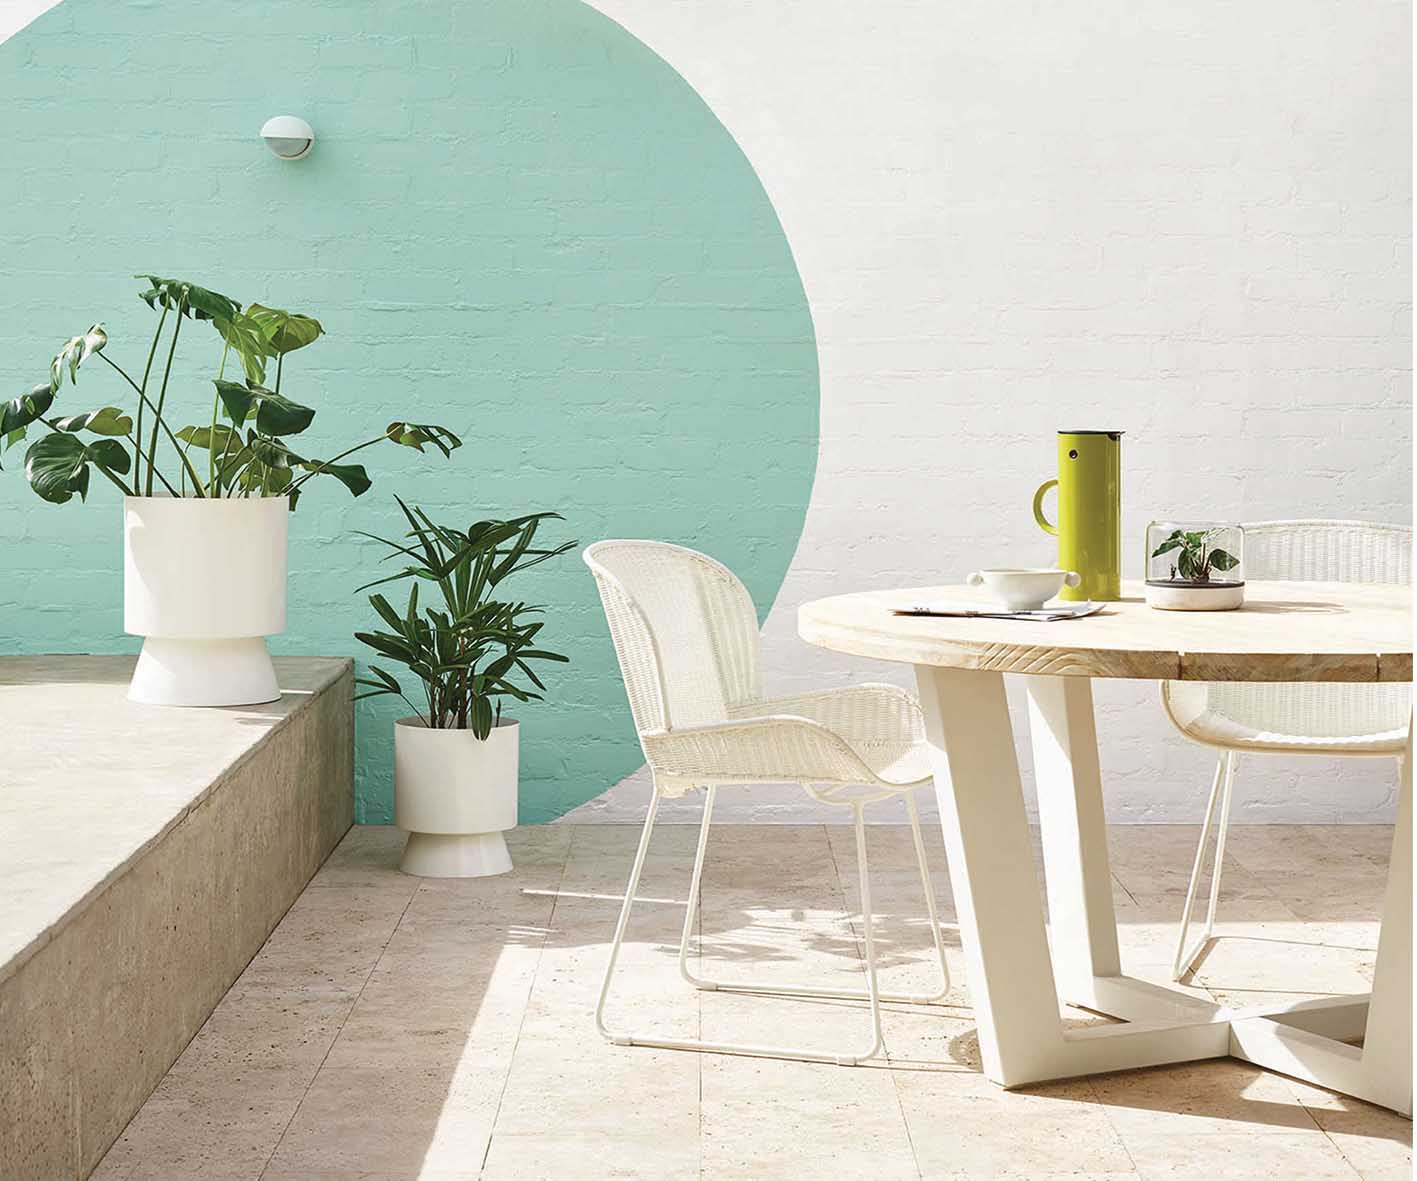 PIERCRETE-POST-IMAGES - STYLISH-CONCRETE-WALL-MAKEOVER-no-credits-noted